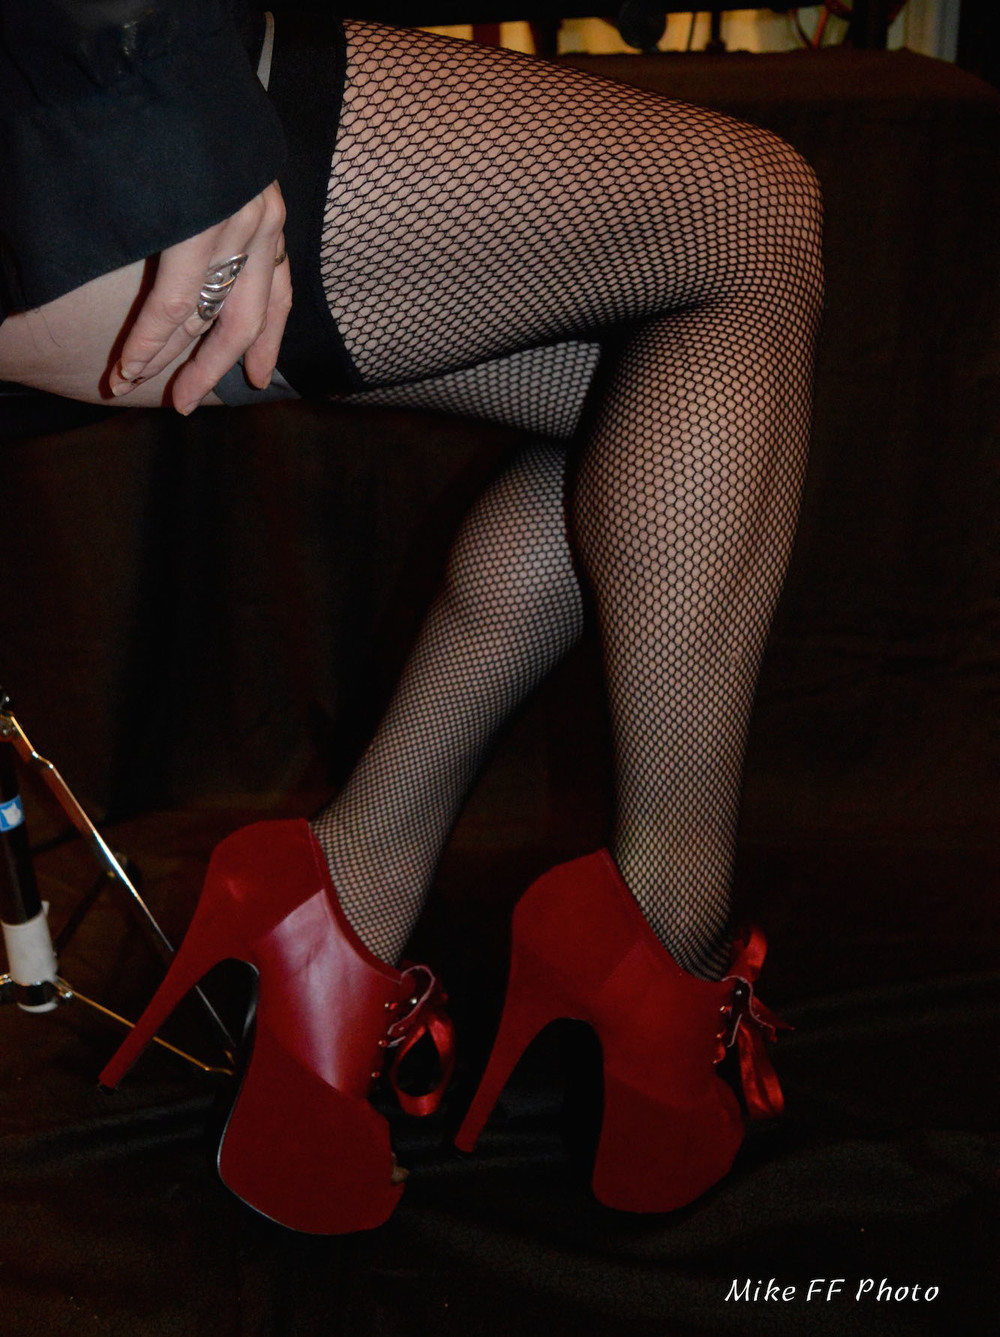 Red shoes Mistress Fabula foot fetish2.jpg